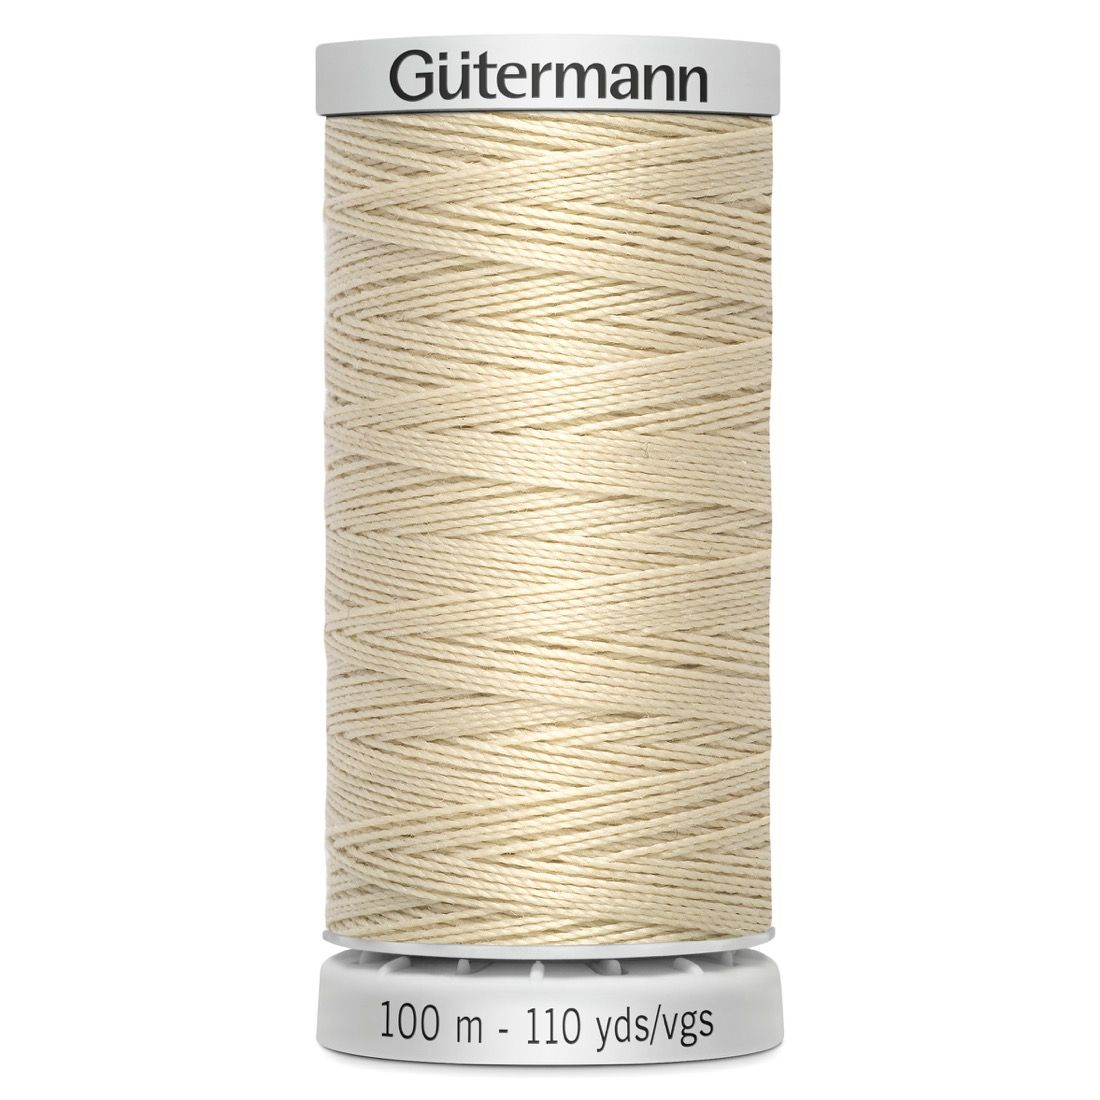 Gutermann Extra Strong Upholstery Thread - 100m - 414